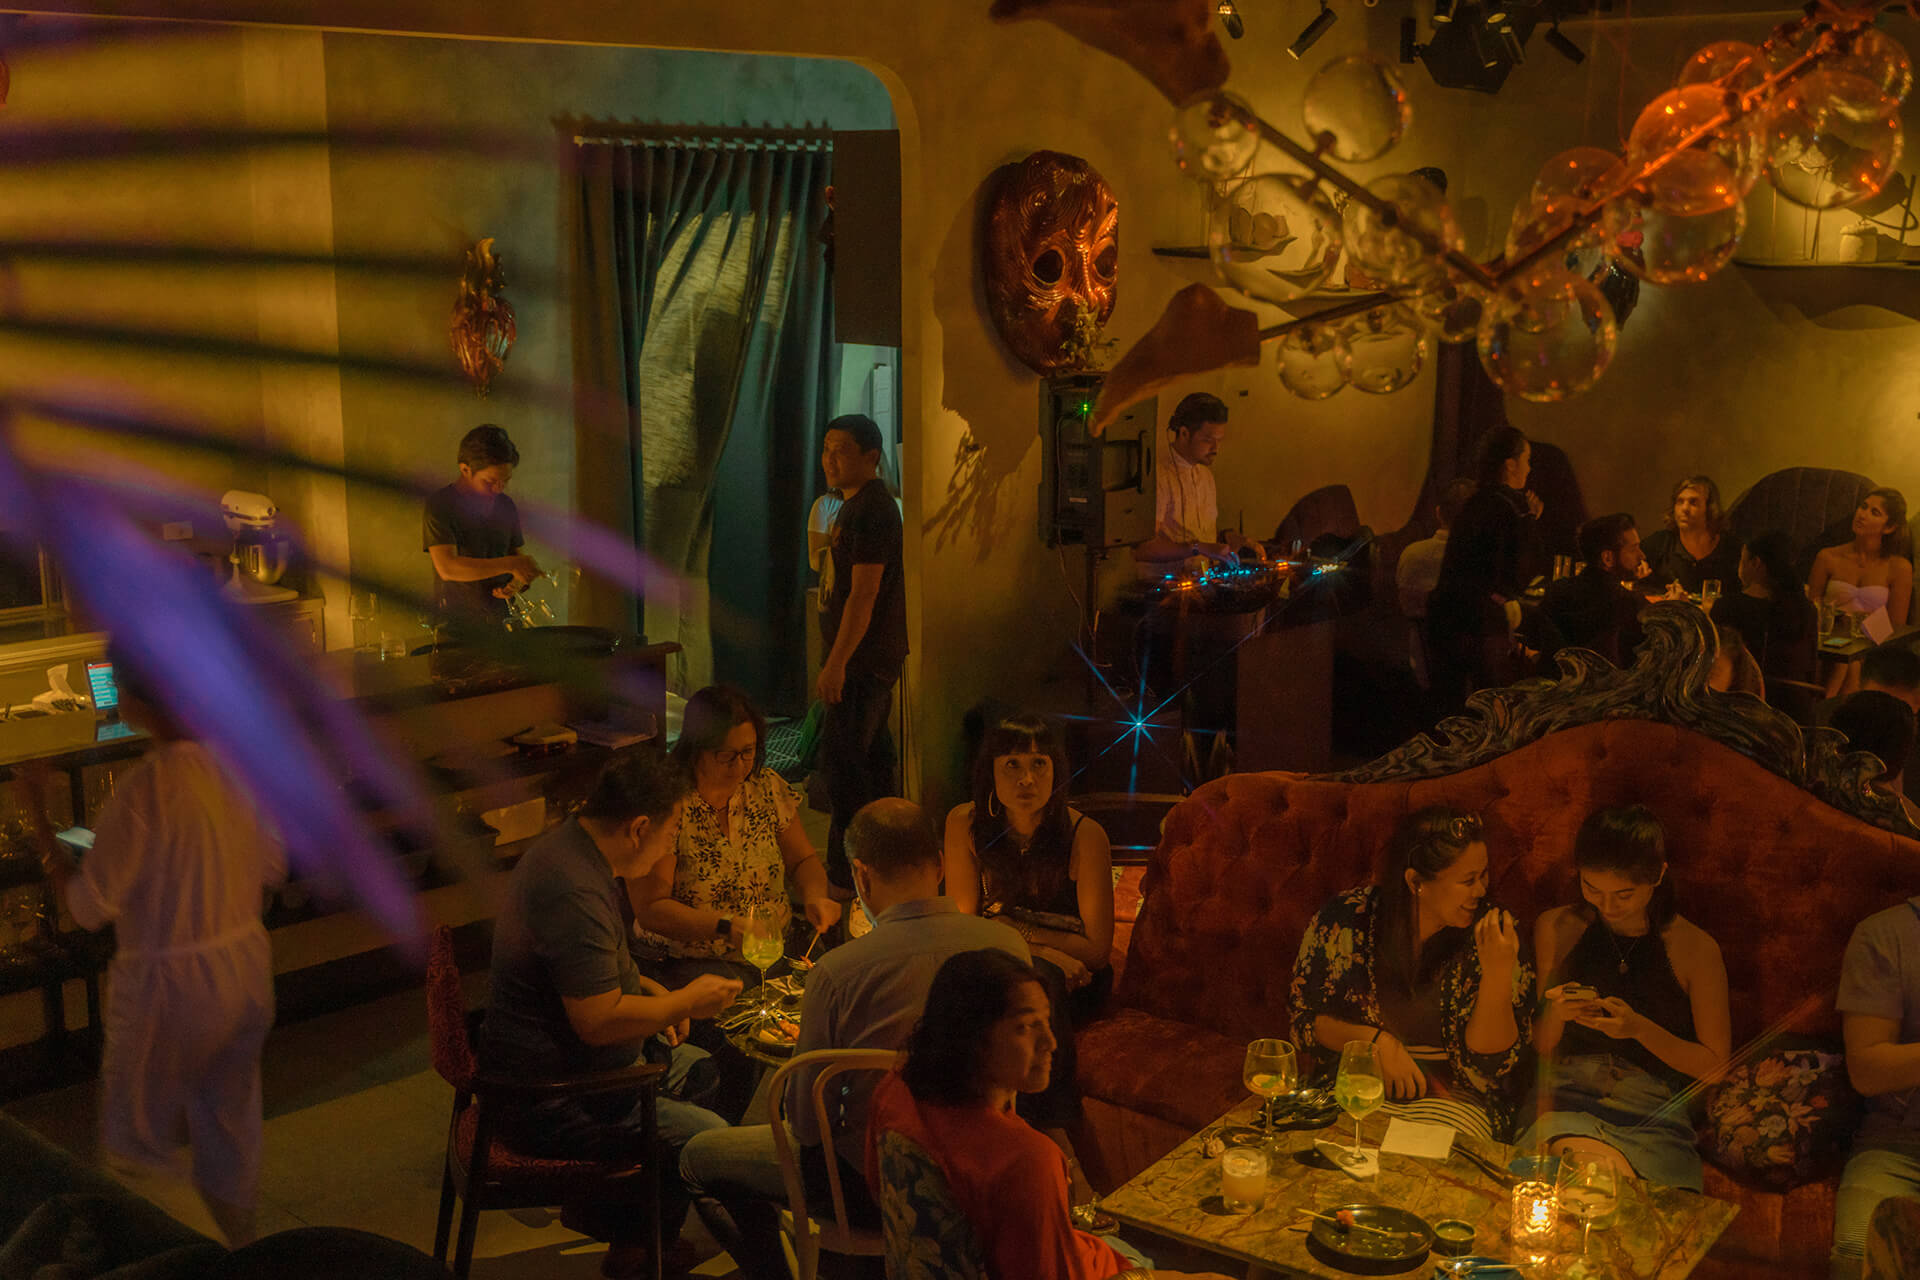 One of the newest additions to Poblacion's eclectic bar scene, KONDWI provides a new dimension to the traditional art gallery.